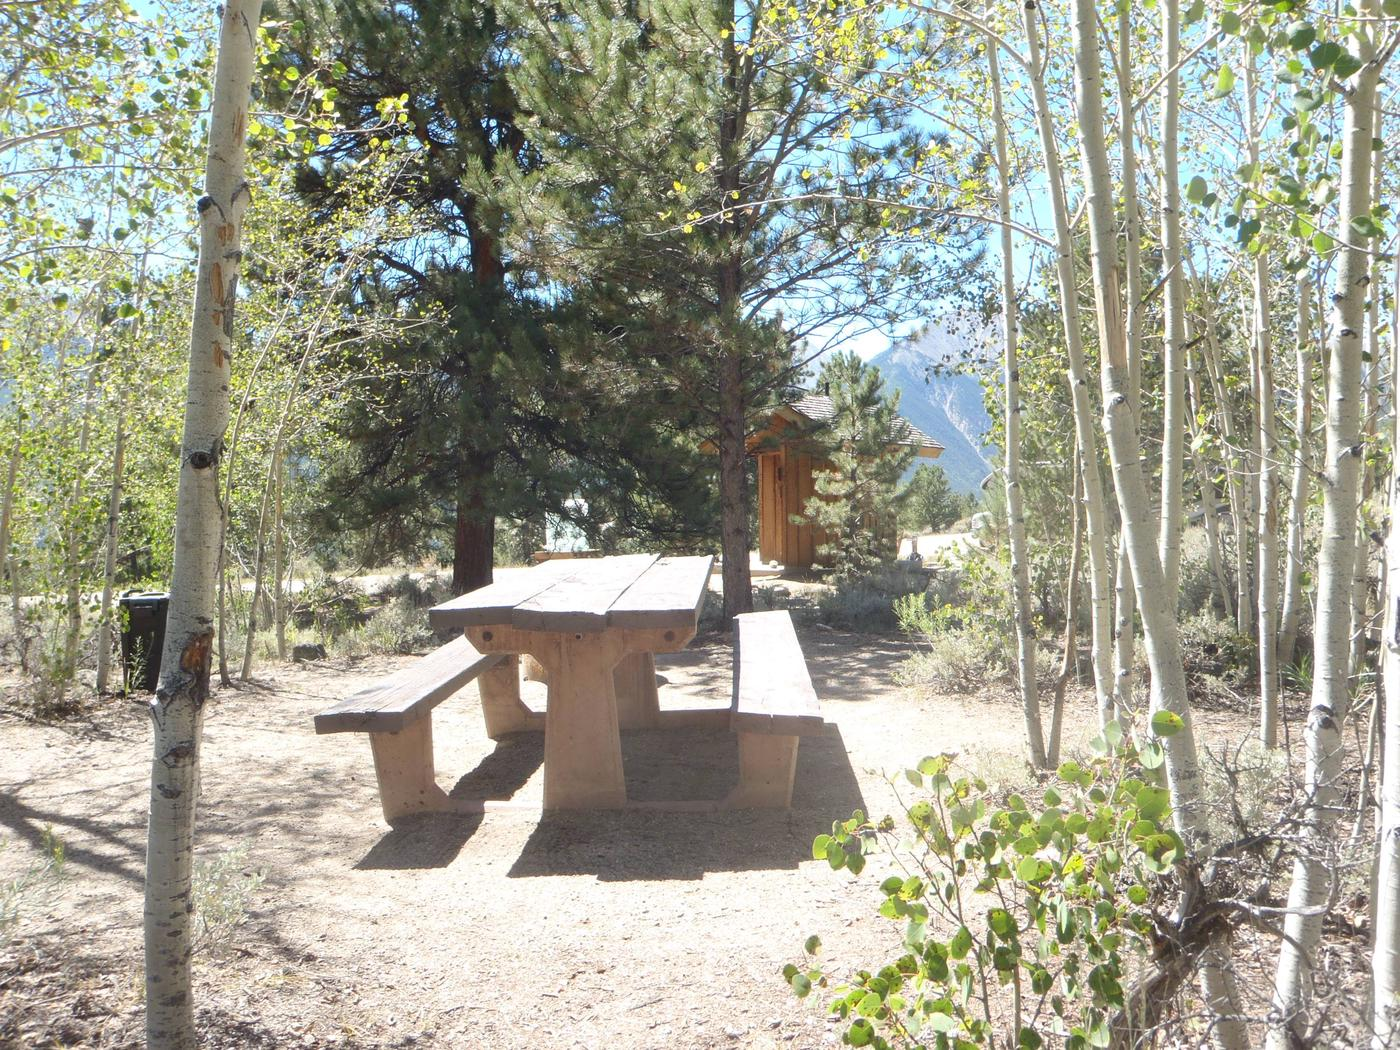 Lakeview Campground, site E12 picnic table